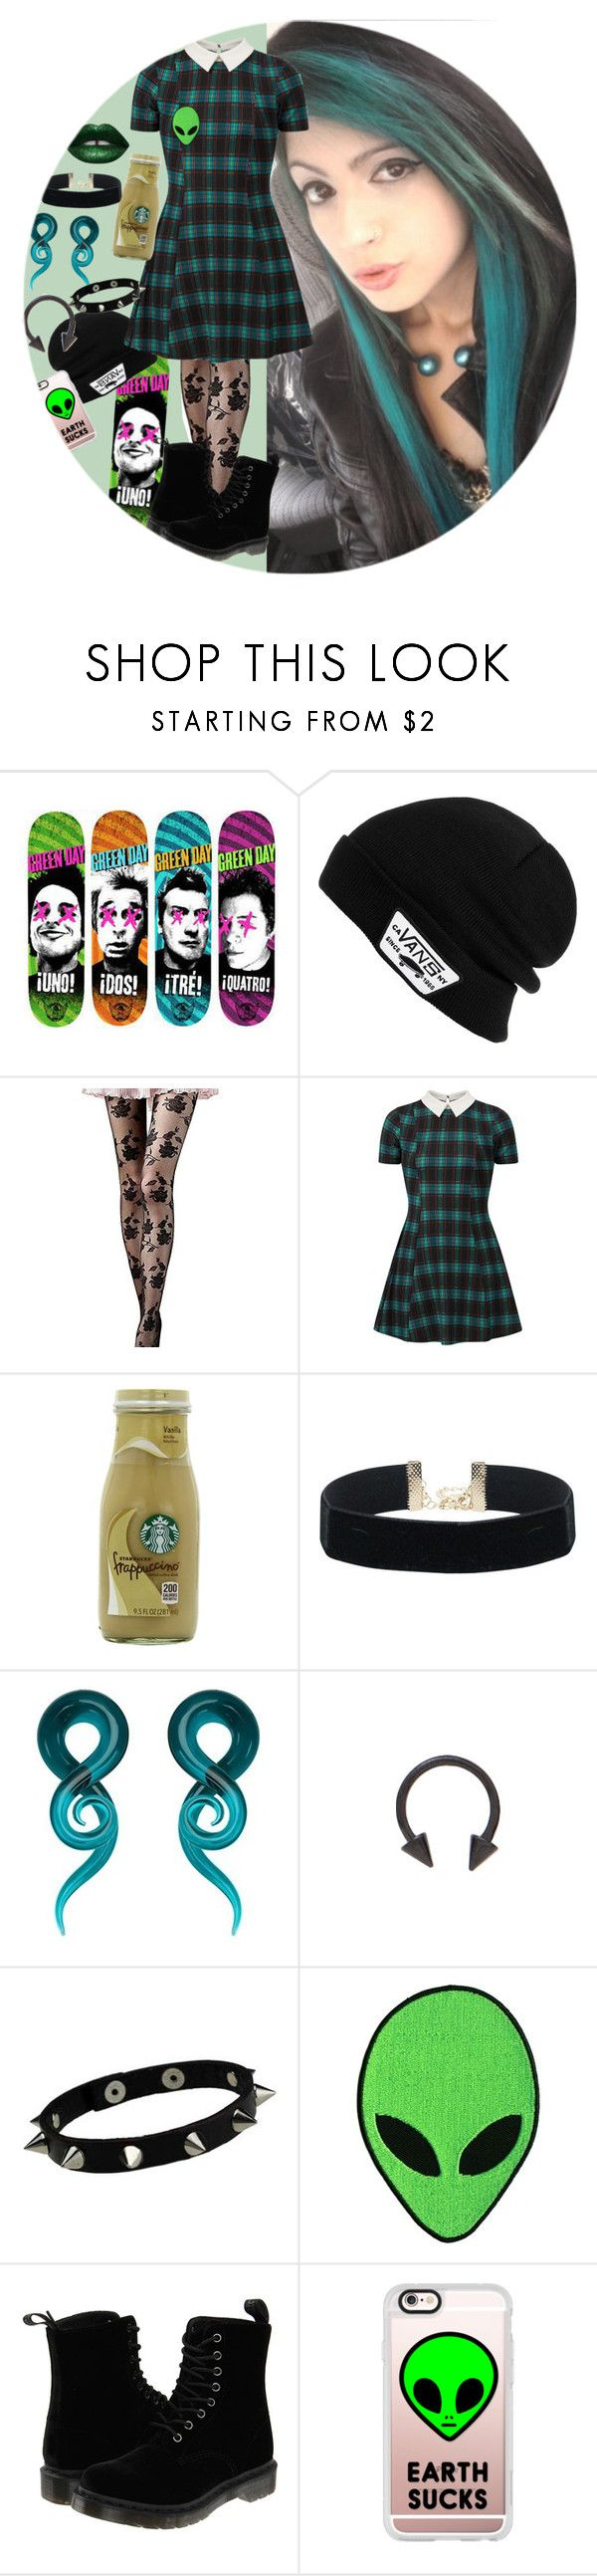 """Teal And Green"" by chemicalfallout249 ❤ liked on Polyvore featuring Vans, Cameo Rose, Starbucks, Dr. Martens and Casetify"